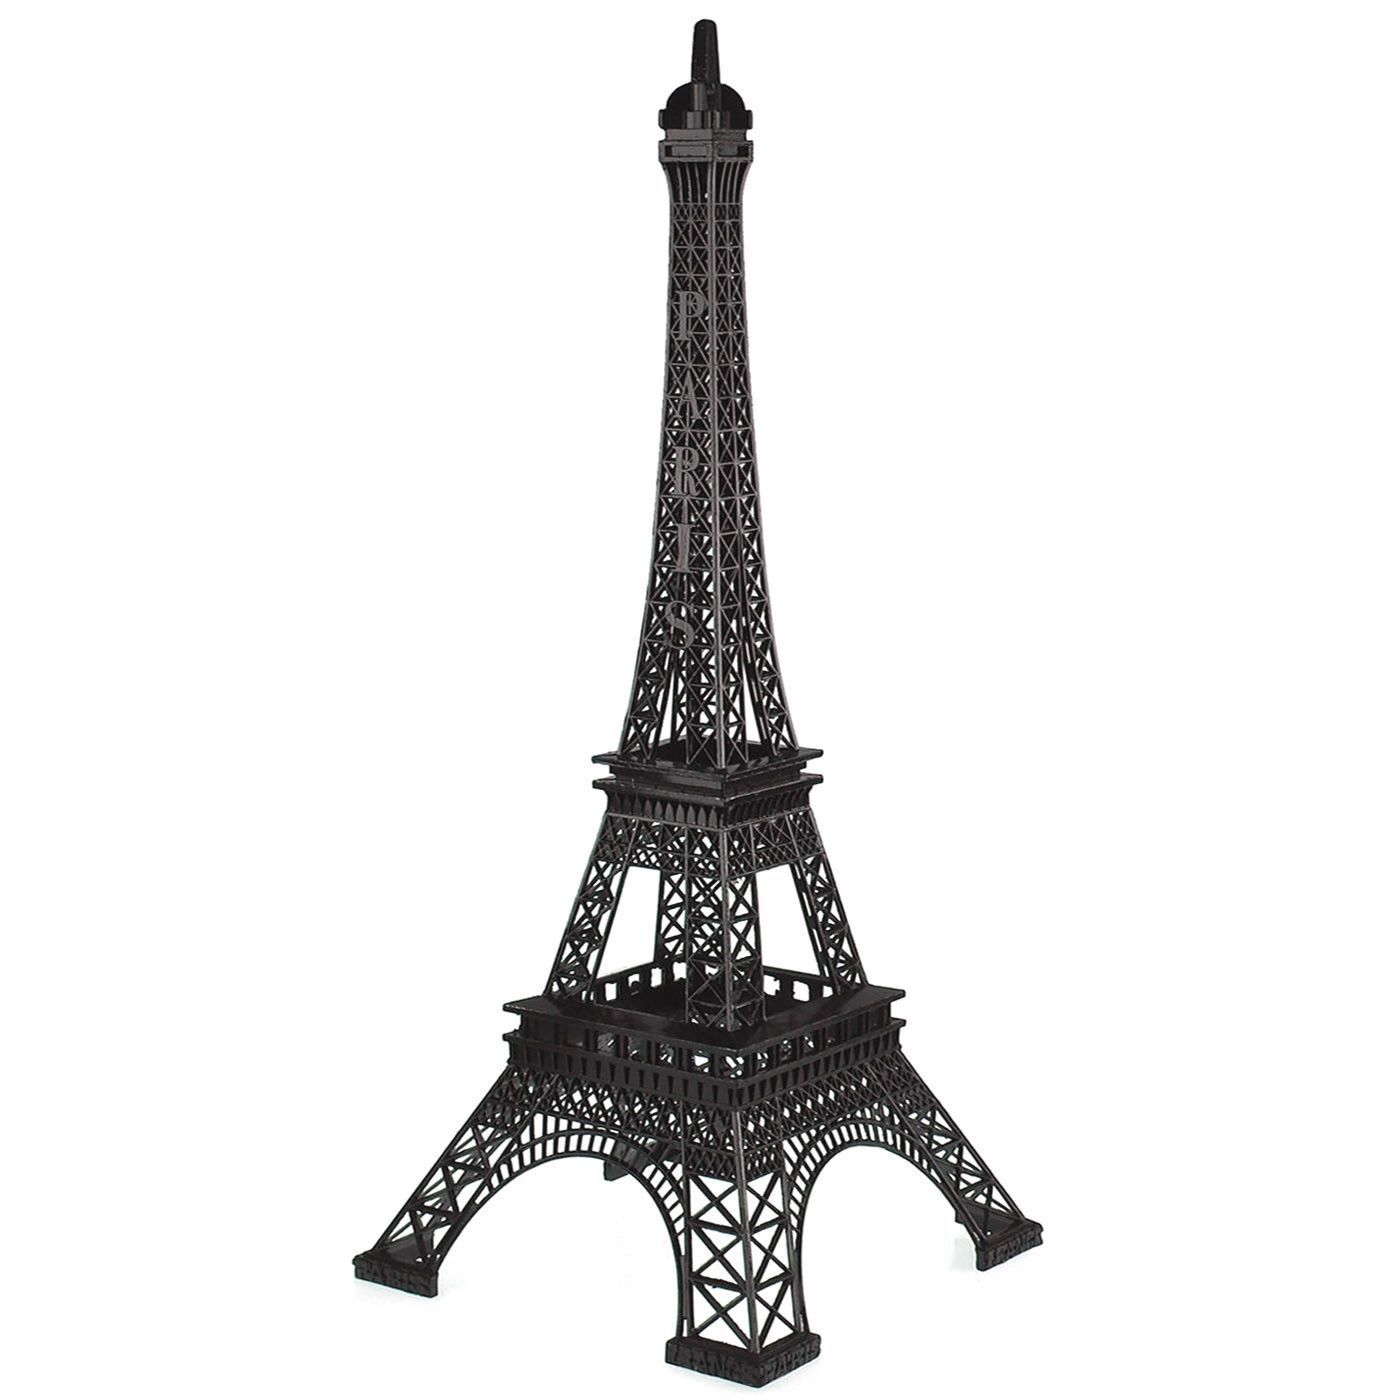 Paris France Eiffel Tower Stand, 20-inch, Black